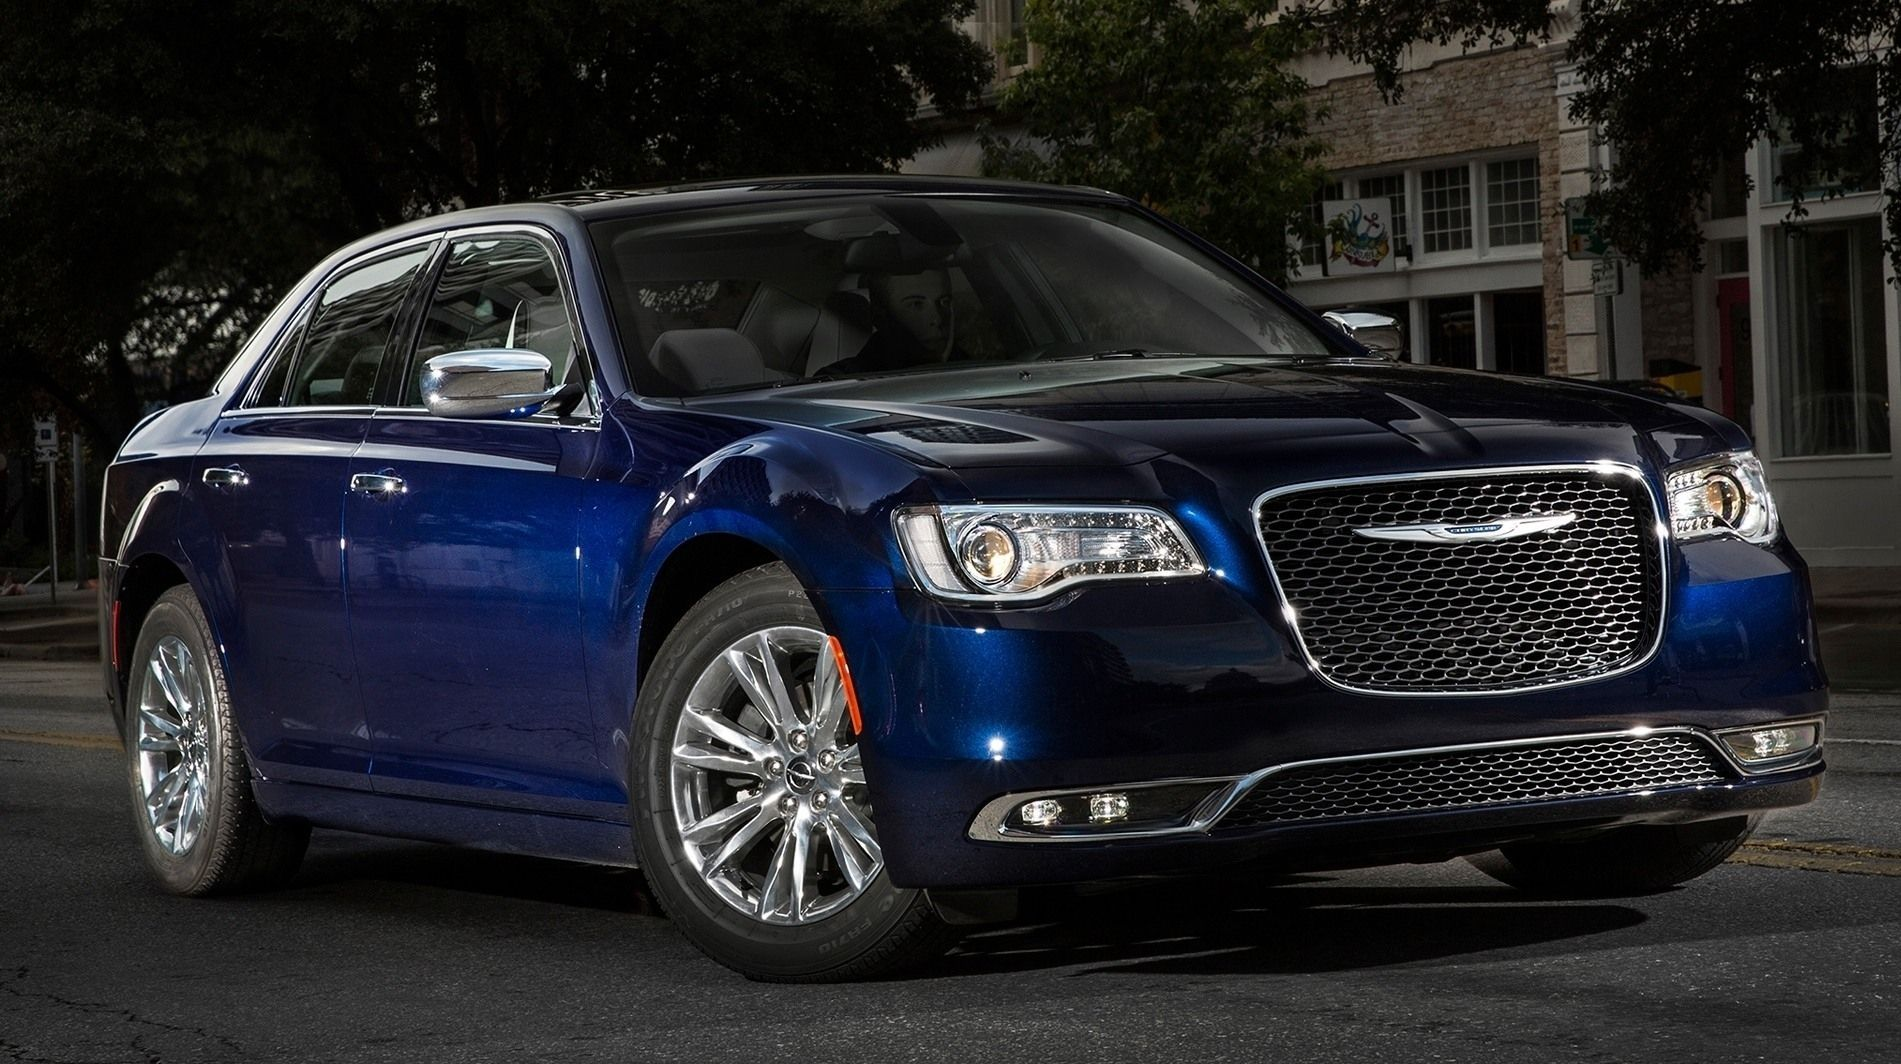 Best 2020 Chrysler 300 Srt8 Review Chrysler 300 Chrysler 300